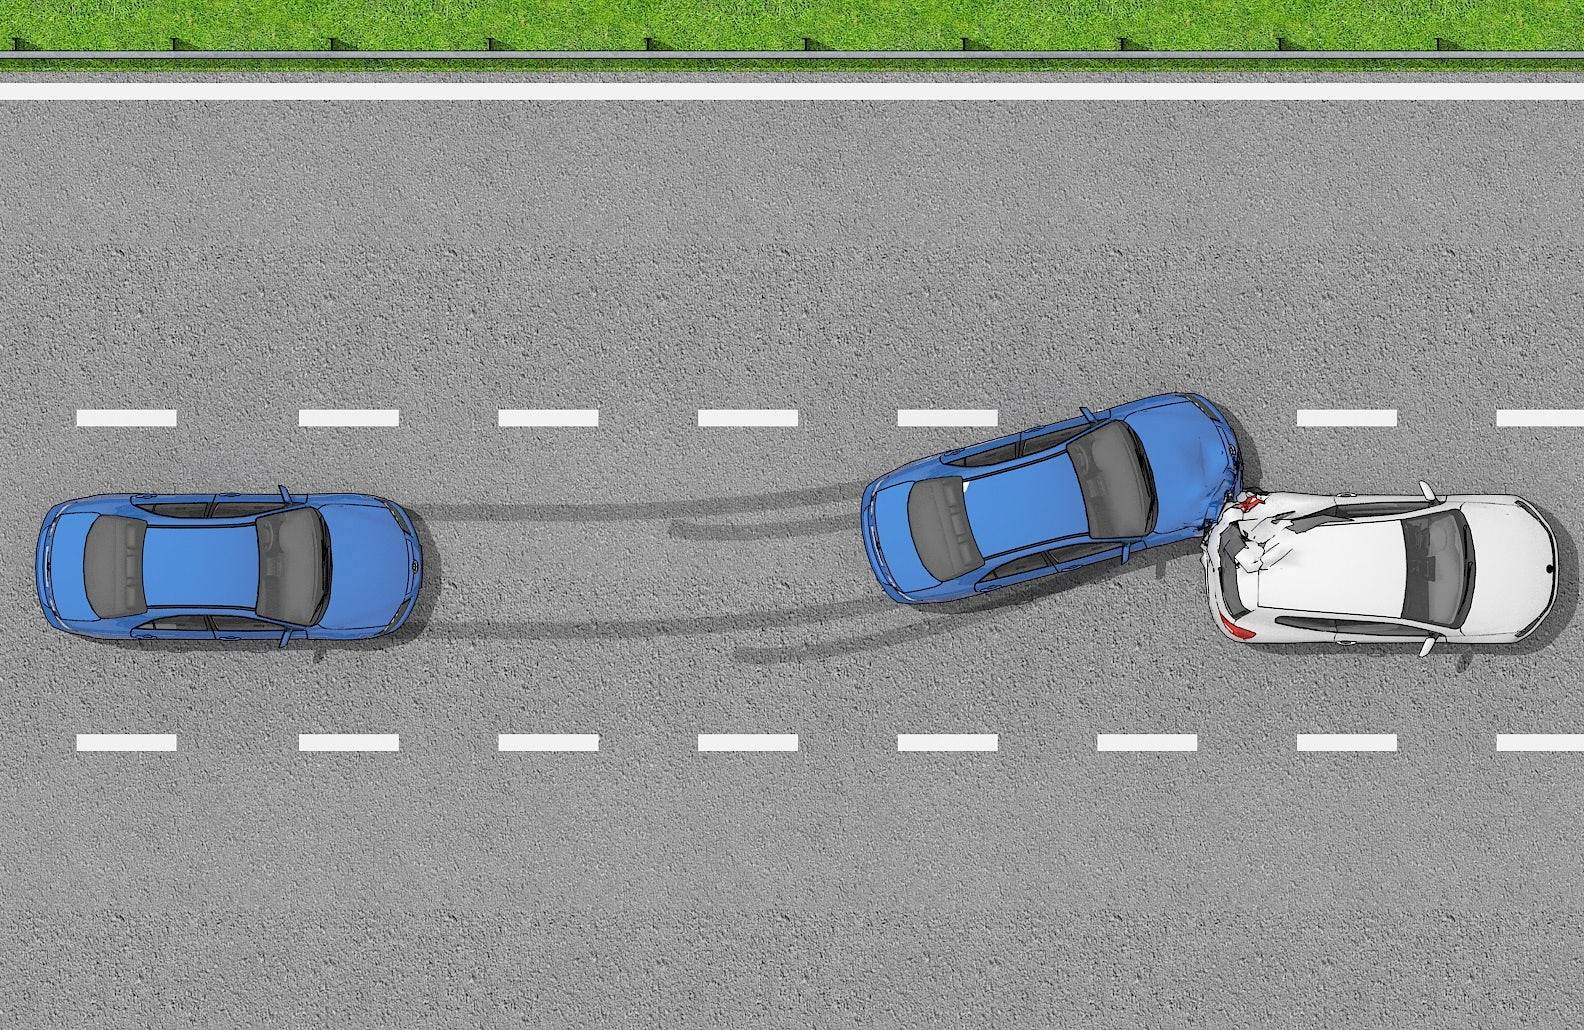 Road safety, stopping distances and 2-second rule.